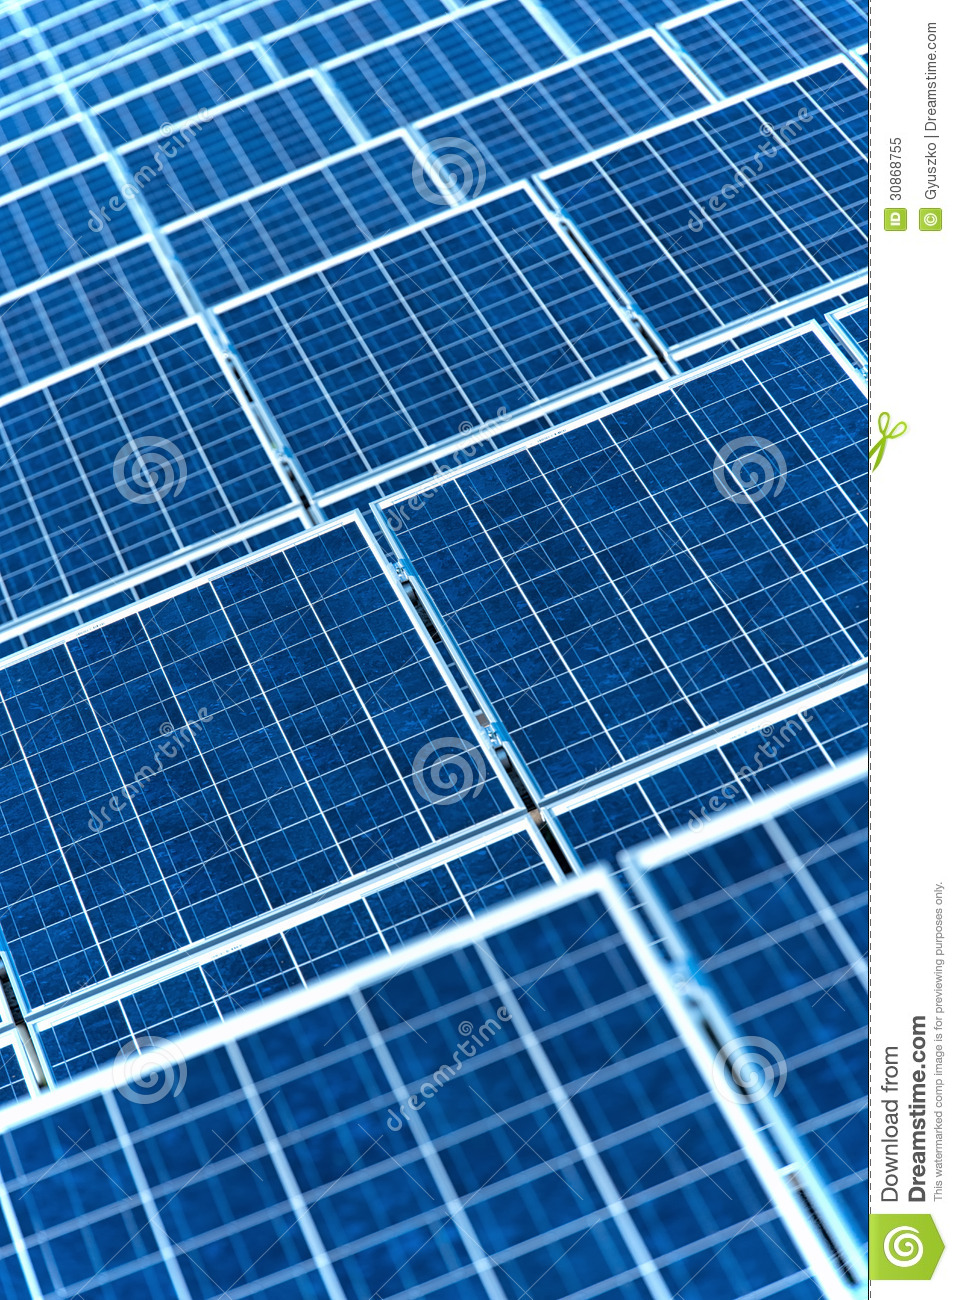 Photovoltaic Solar Panels For Renewable Electrical Energy Production.